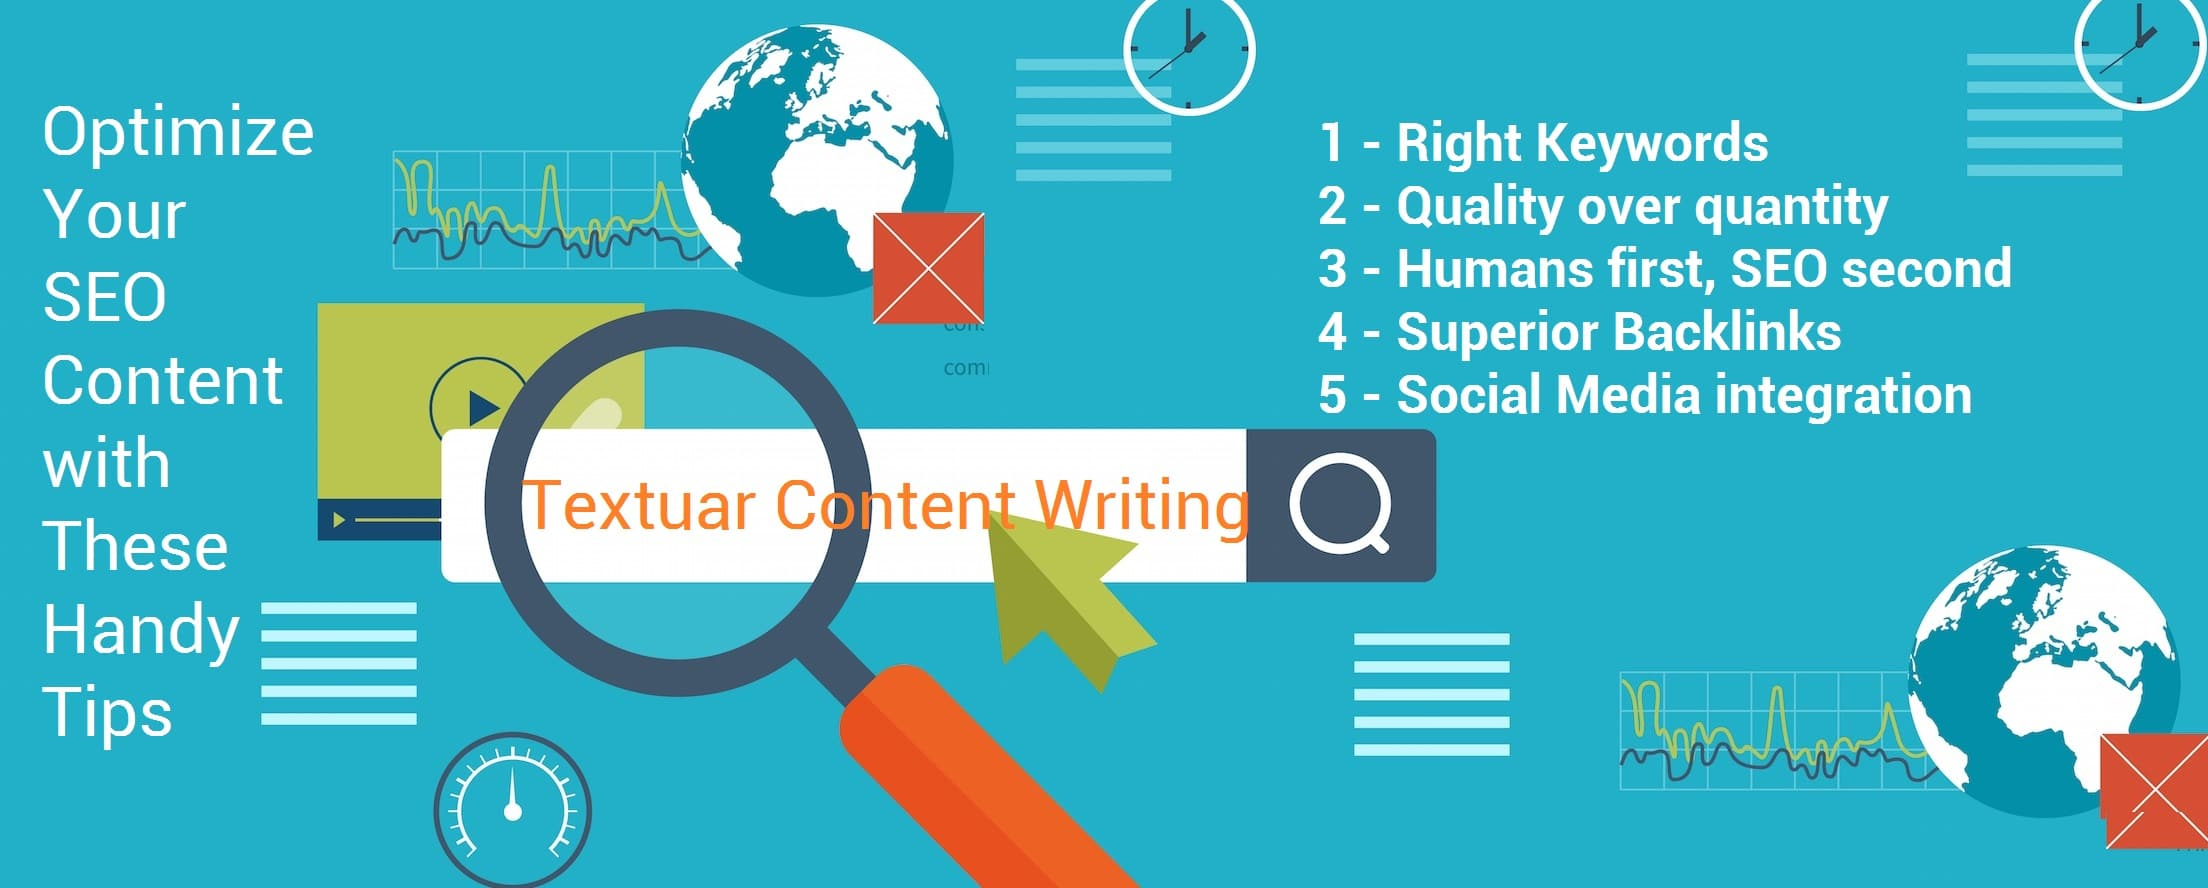 Blog Writing Services Tampa